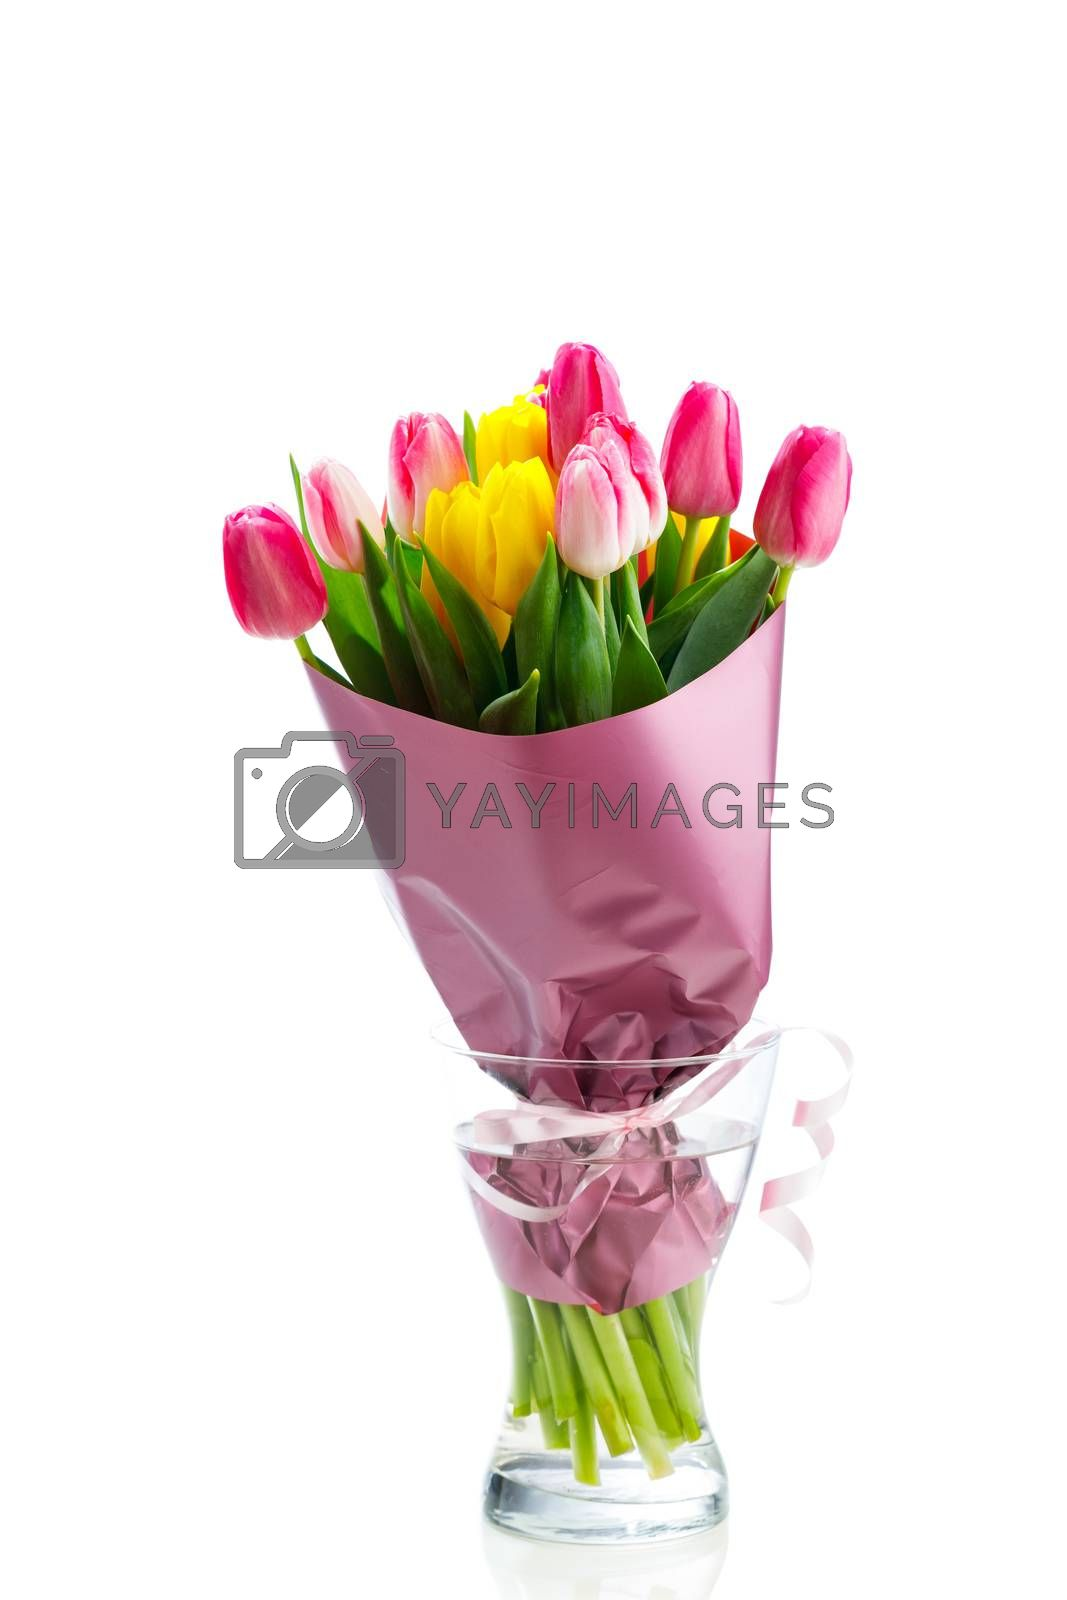 tulip flowers bouquet in a glass vase, isolated on white